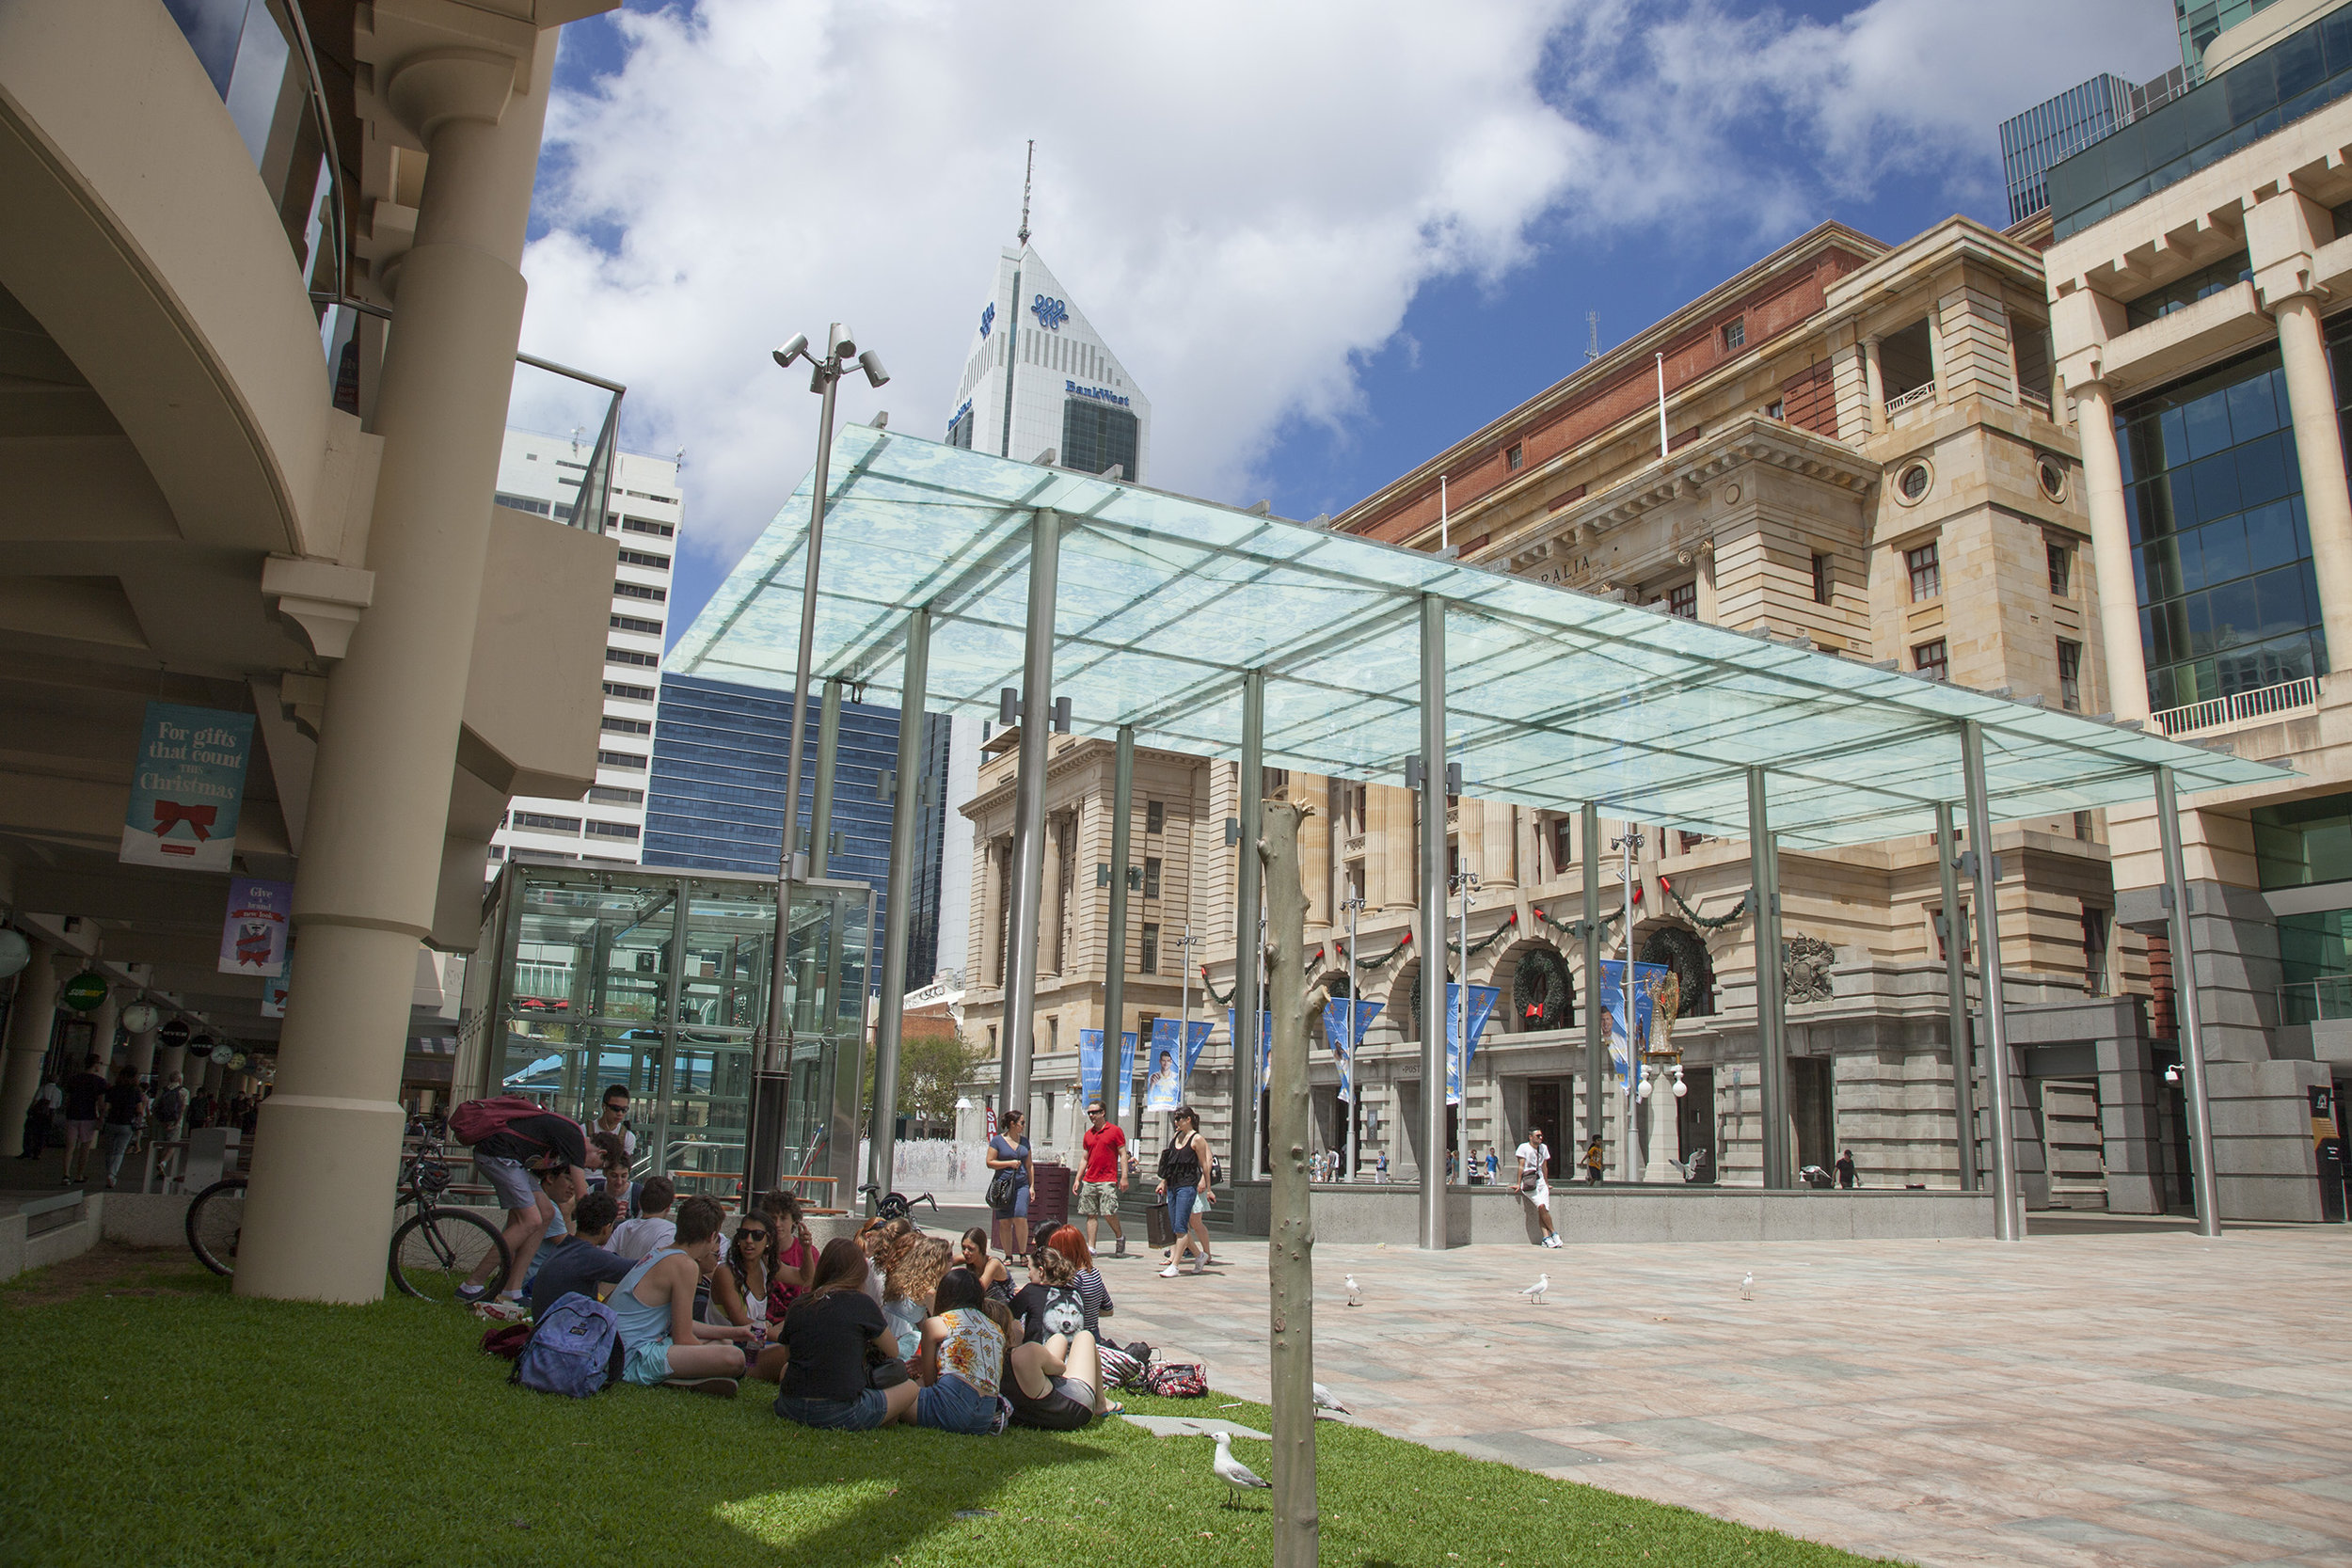 Figs 15, 16: Northern end of Forrest Place and the Cactus